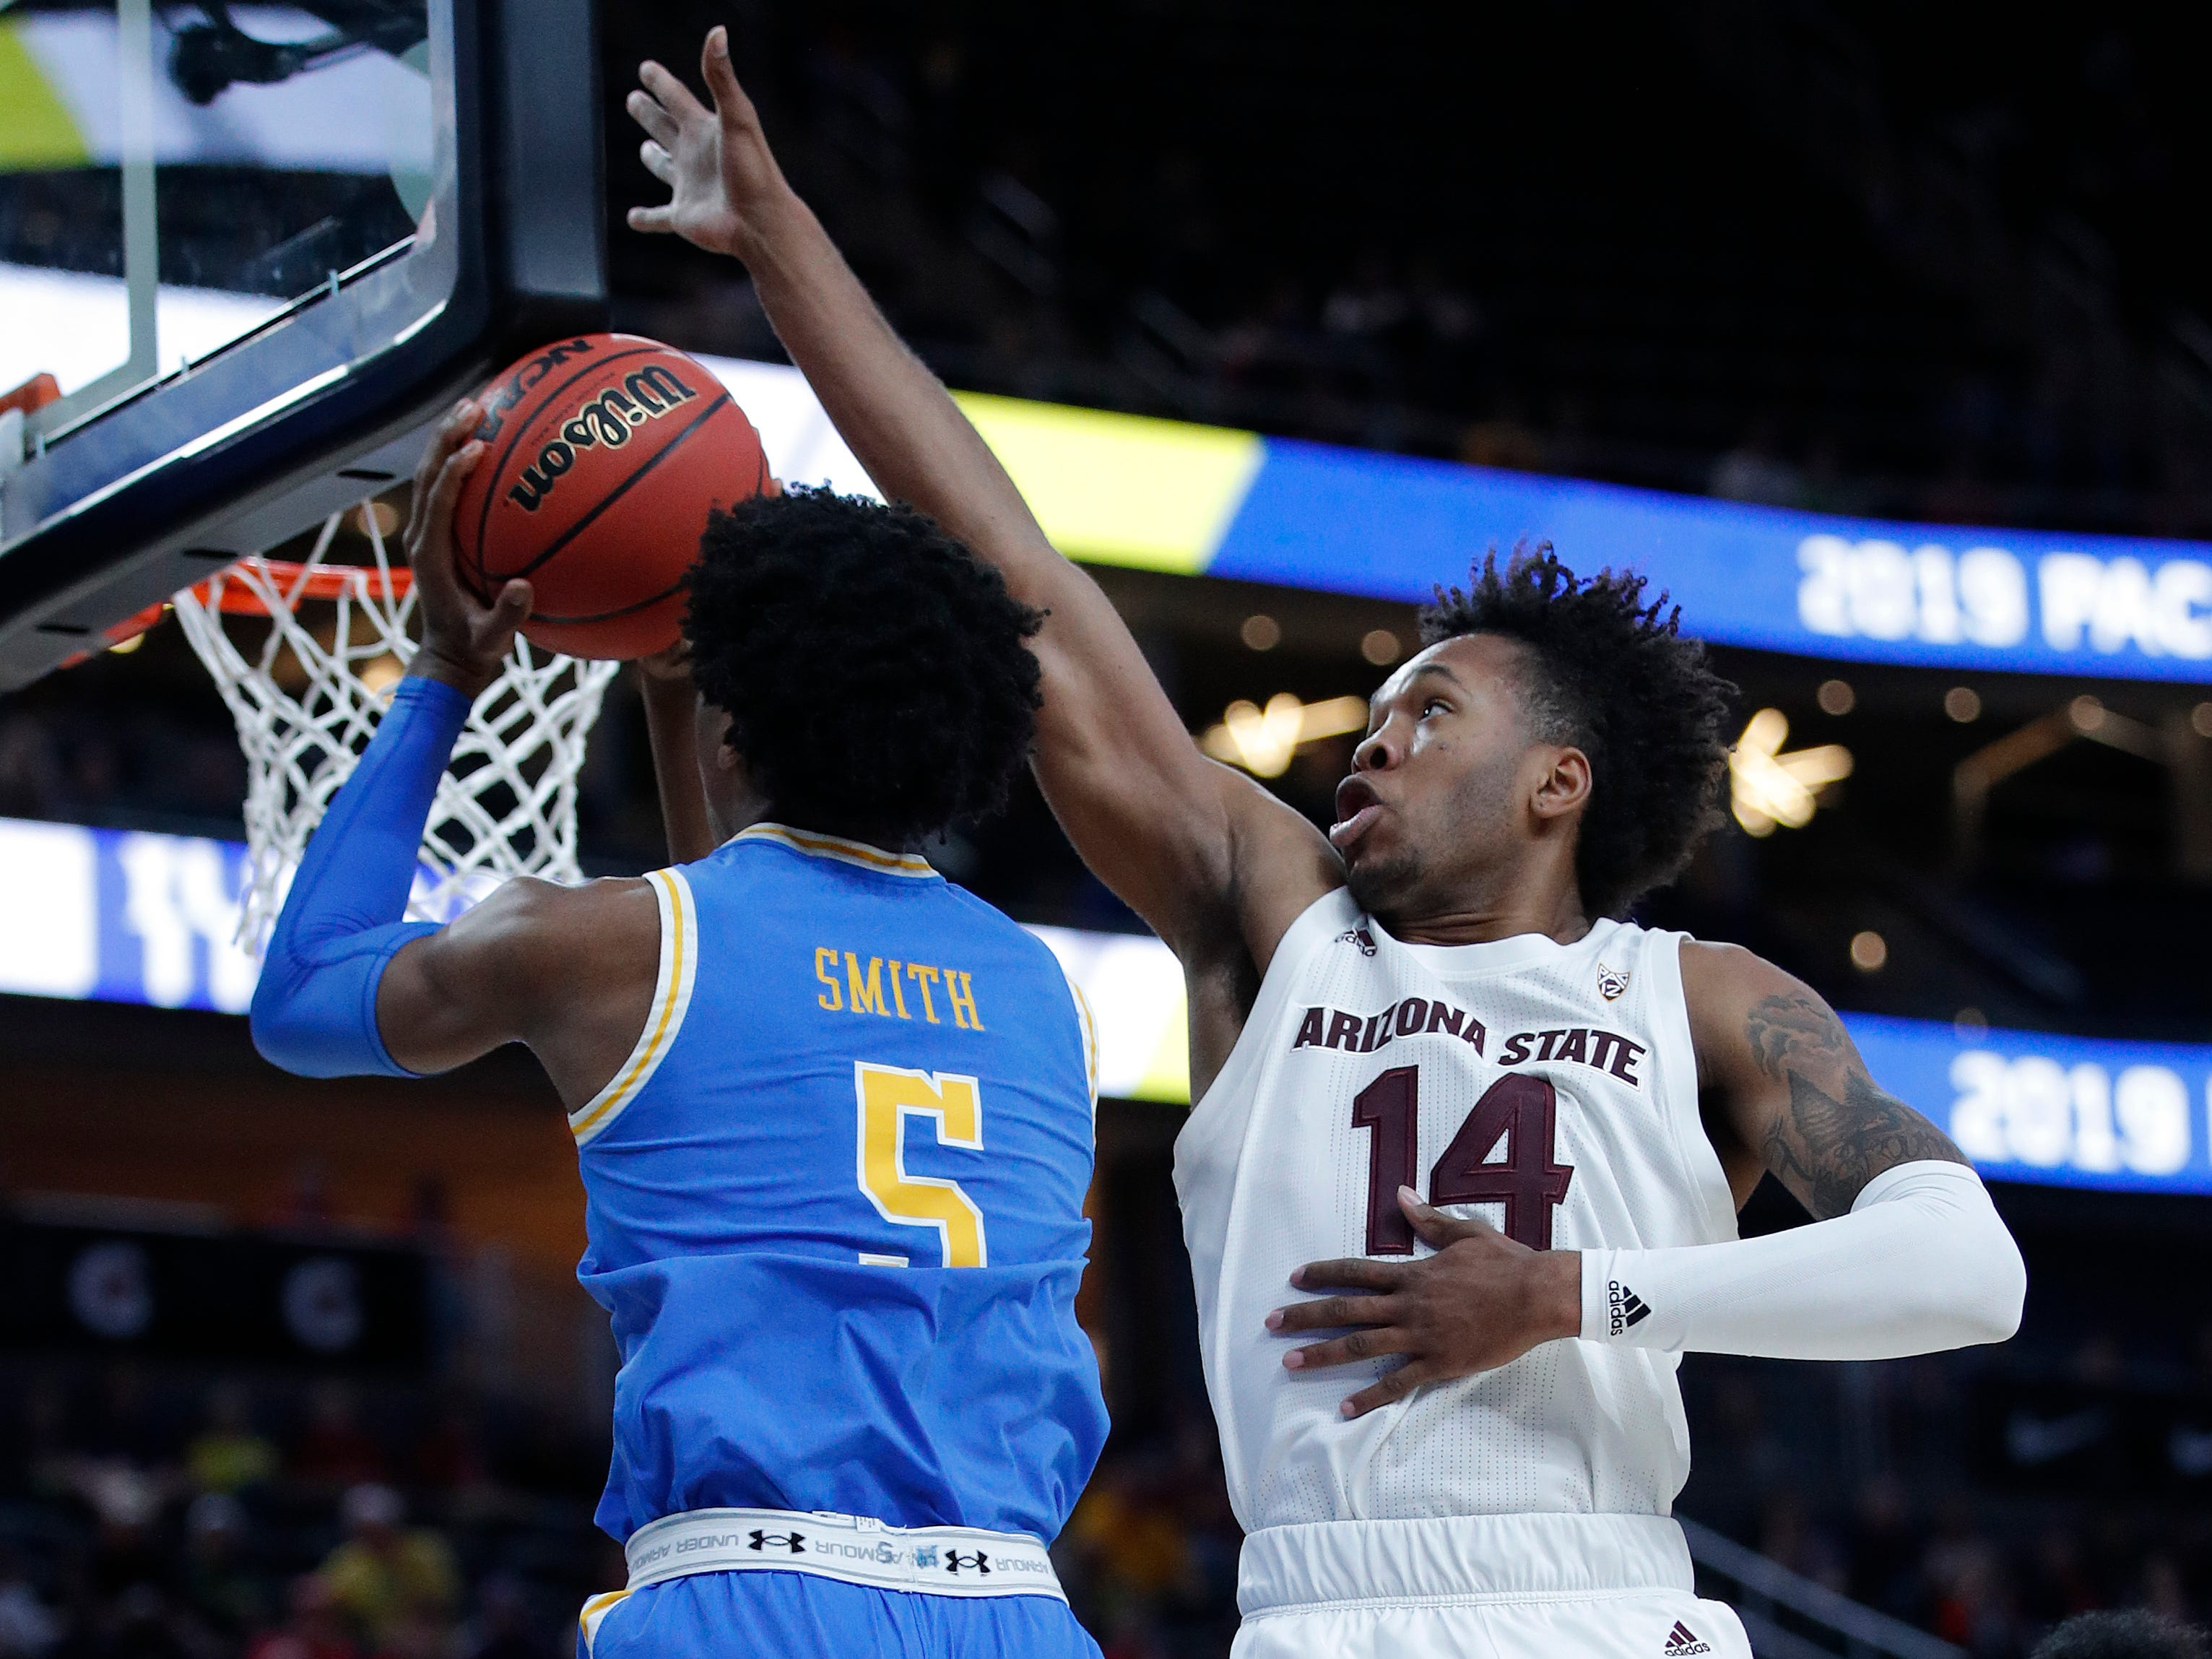 Arizona State's Kimani Lawrence, right, blocks a shot by UCLA's Chris Smith during the first half of an NCAA college basketball game in the quarterfinals of the Pac-12 men's tournament Thursday, March 14, 2019, in Las Vegas.